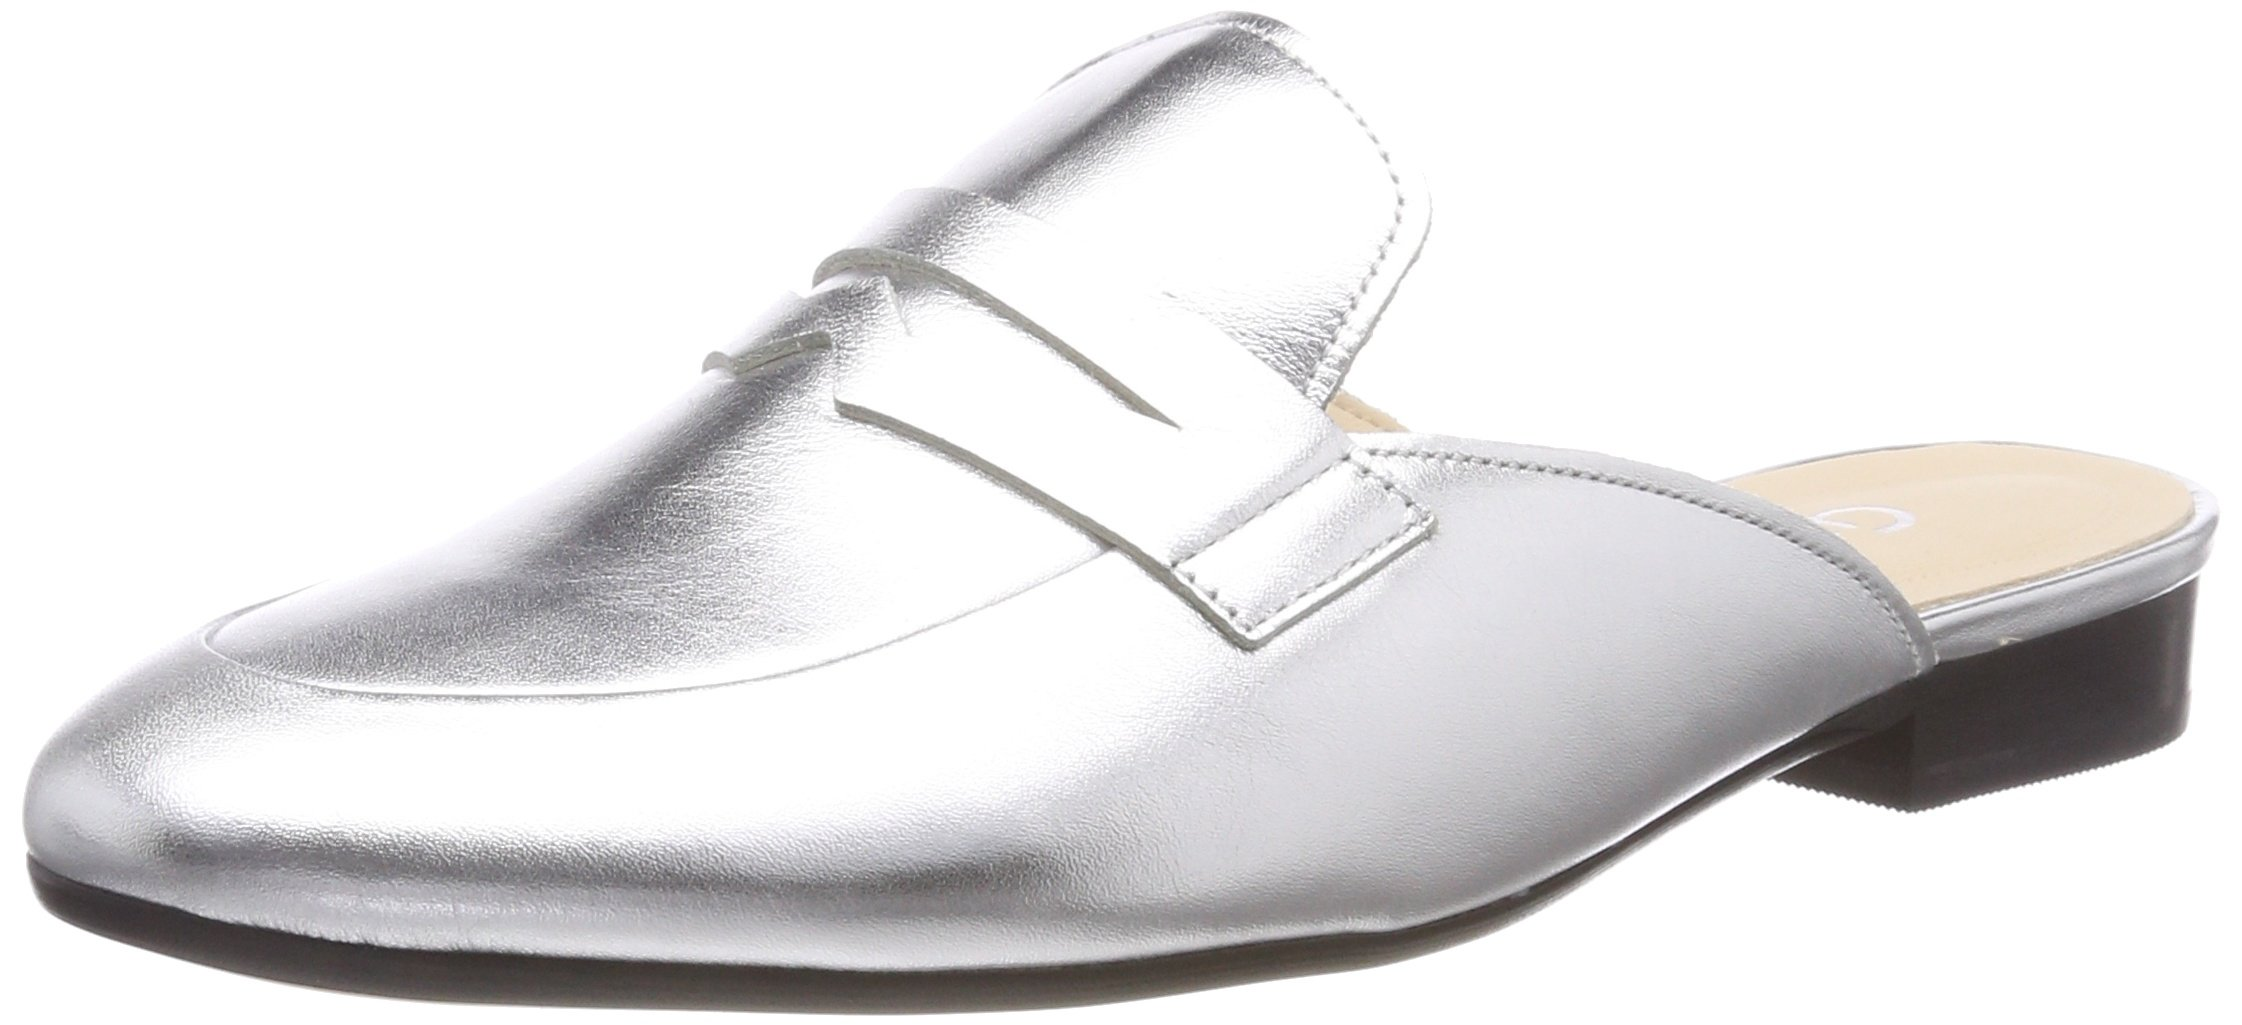 save off b5b13 24137 Details about Gabor Women's Comfort Sport Mules 5 UK Multicolour (Silber  Silber 10)